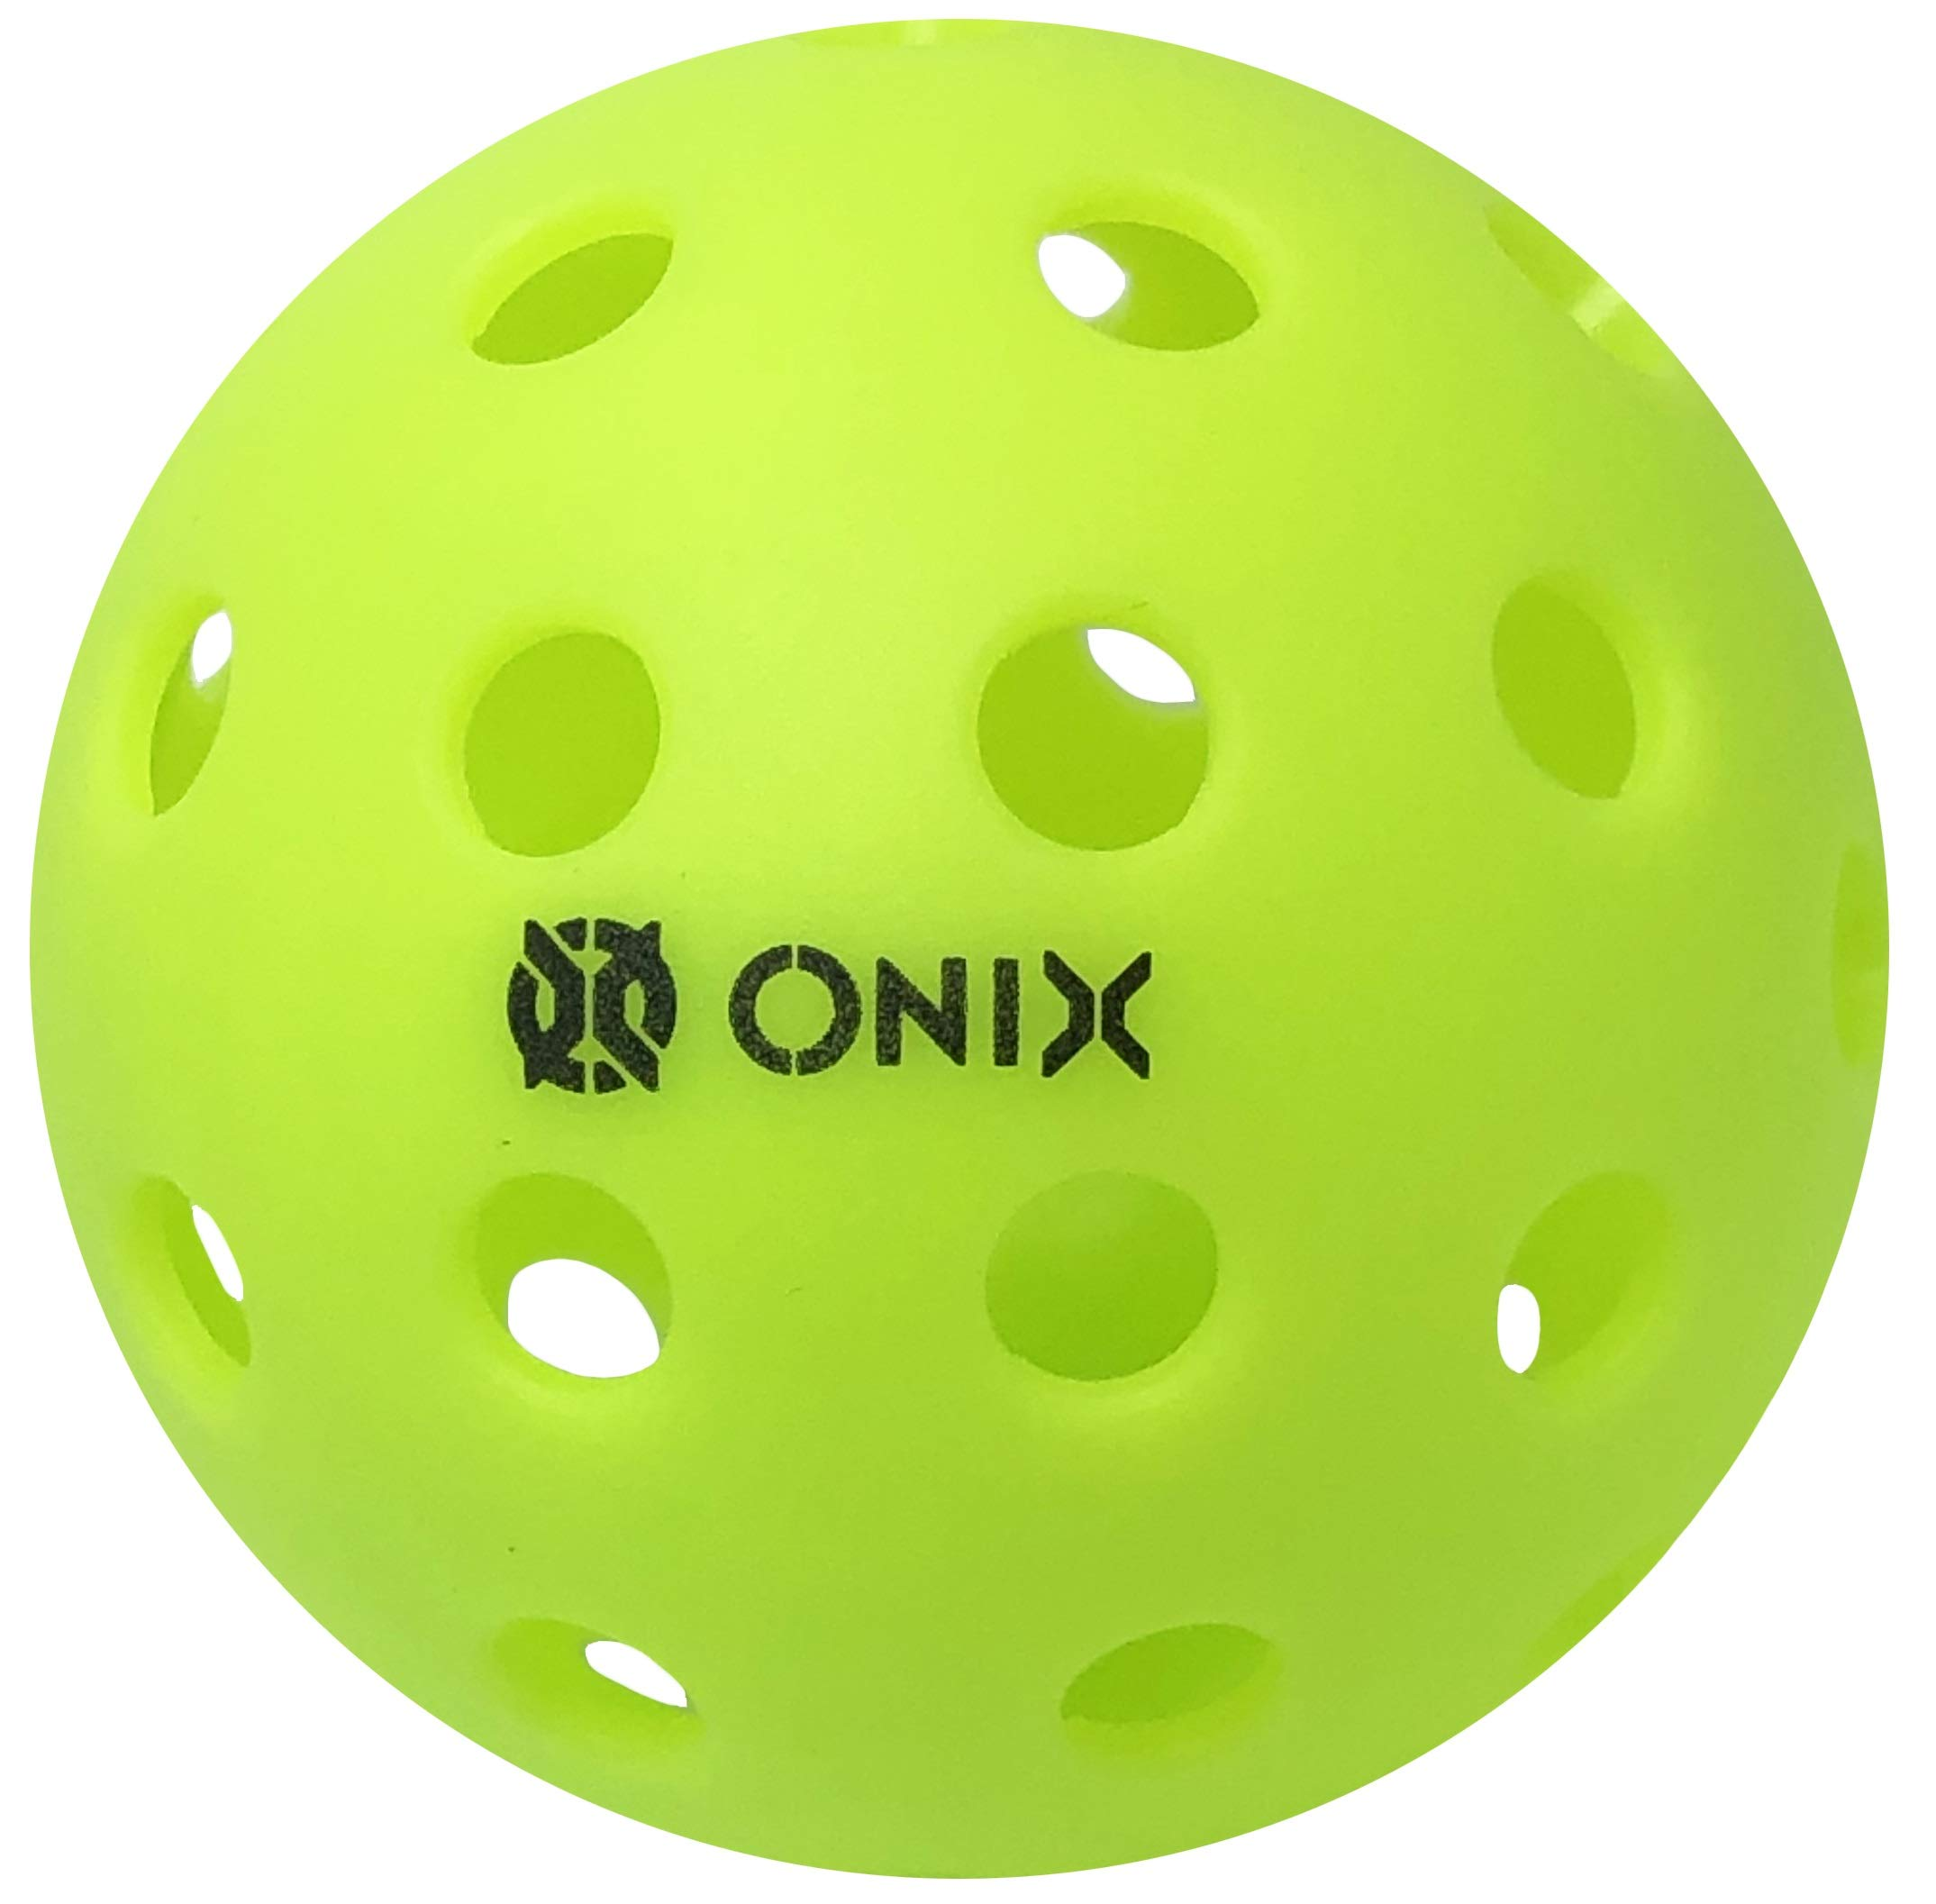 Onix Pure 2 Outdoor Pickleball Balls Specifically Designed and Optimized for Pickleball (3-Pack, Green)